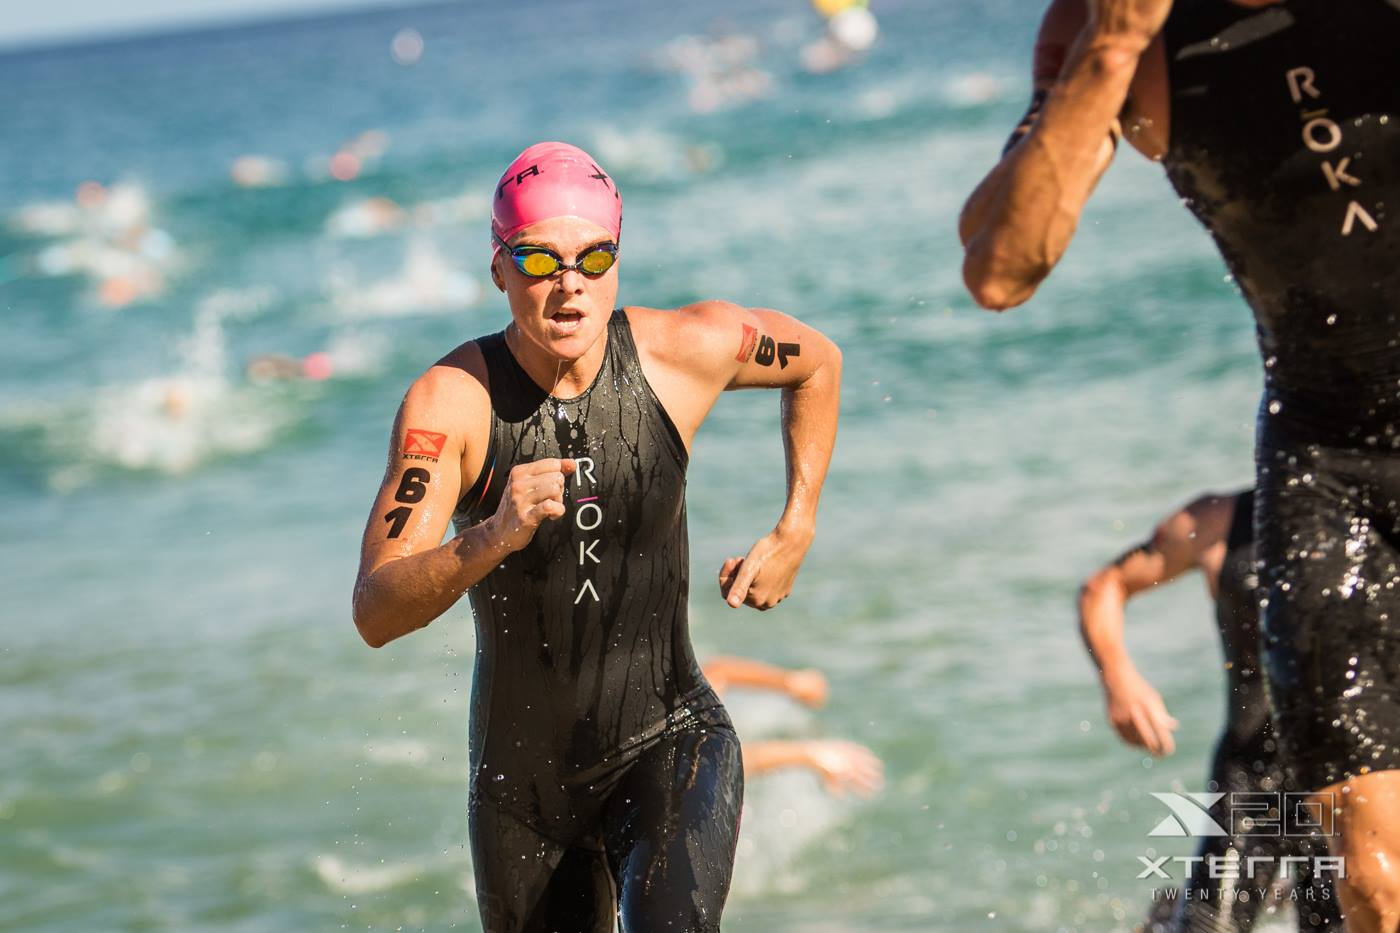 XTERRA_WORLD_CHAMPIONSHIP_2015_00019